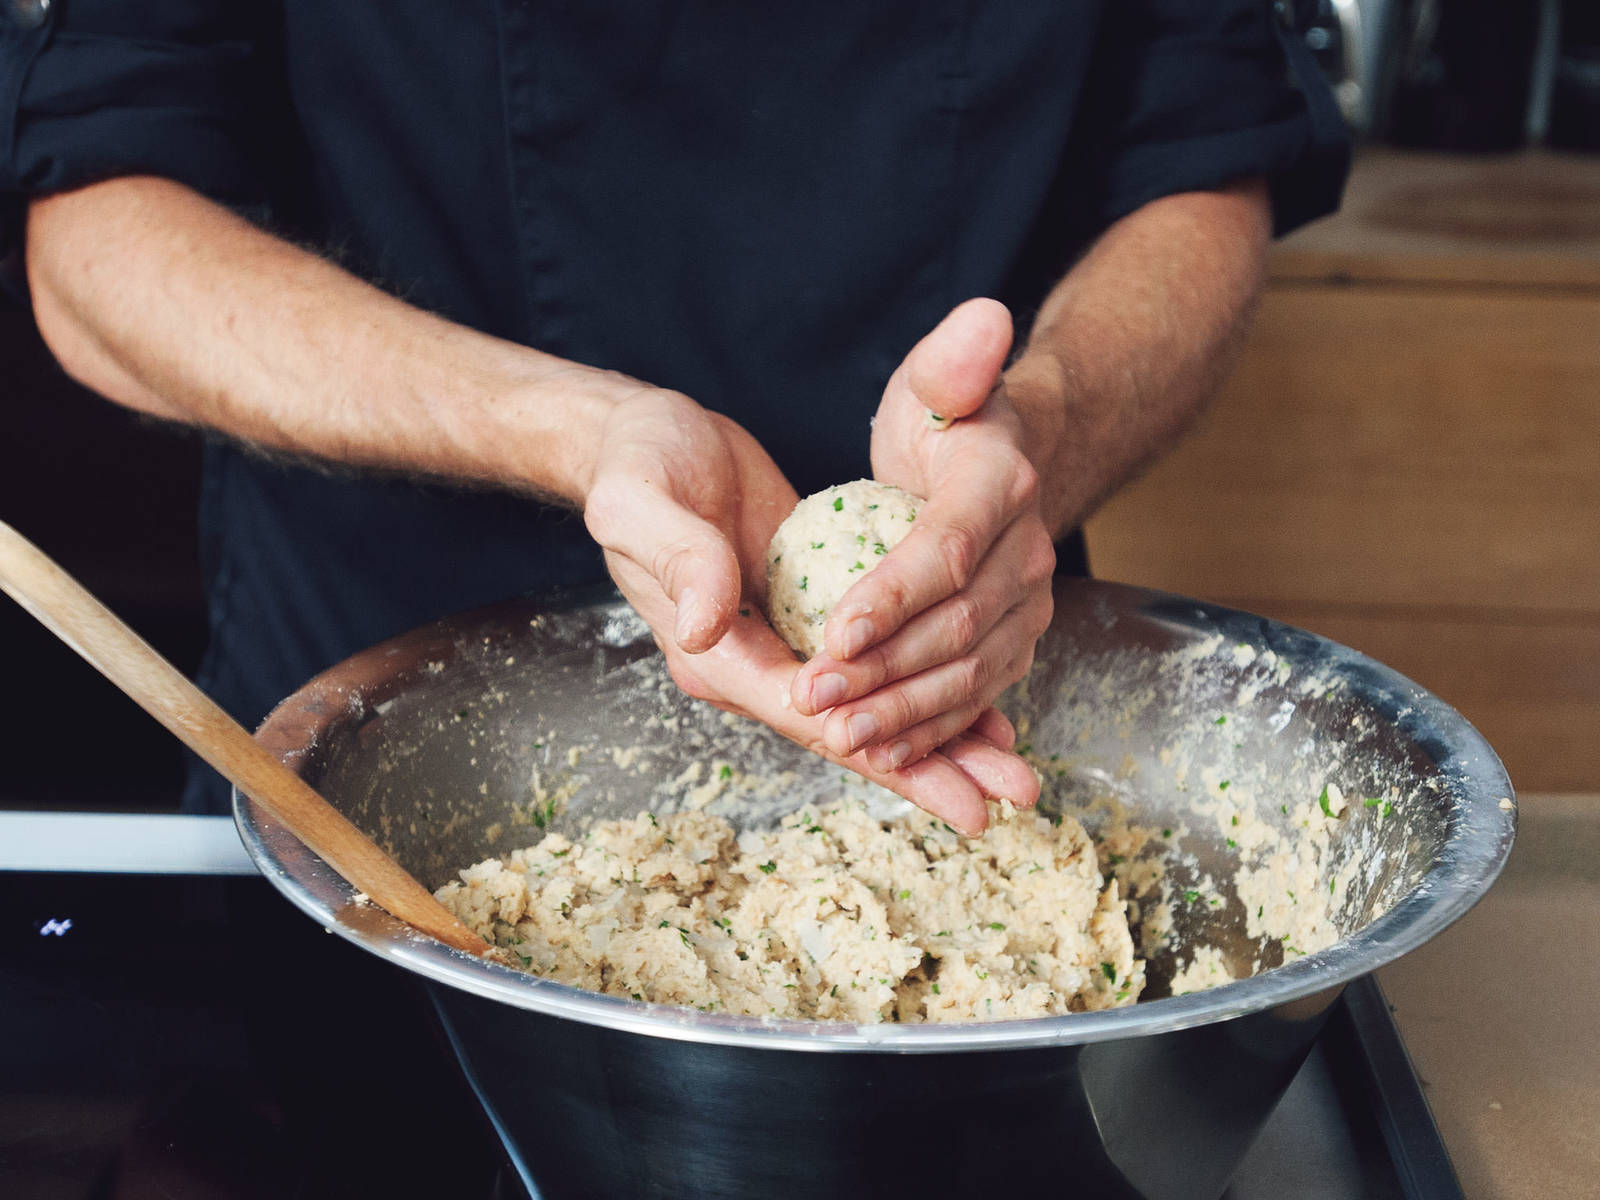 In a large saucepan, bring water to boil and add salt. Turn down heat until the water is hot but does not bubble anymore. Slightly wet hands and form a ball the size of a golf ball out of dumpling dough. Transfer first test dumpling to the saucepan. If it falls apart, add more flour and breadcrumbs to the dough.